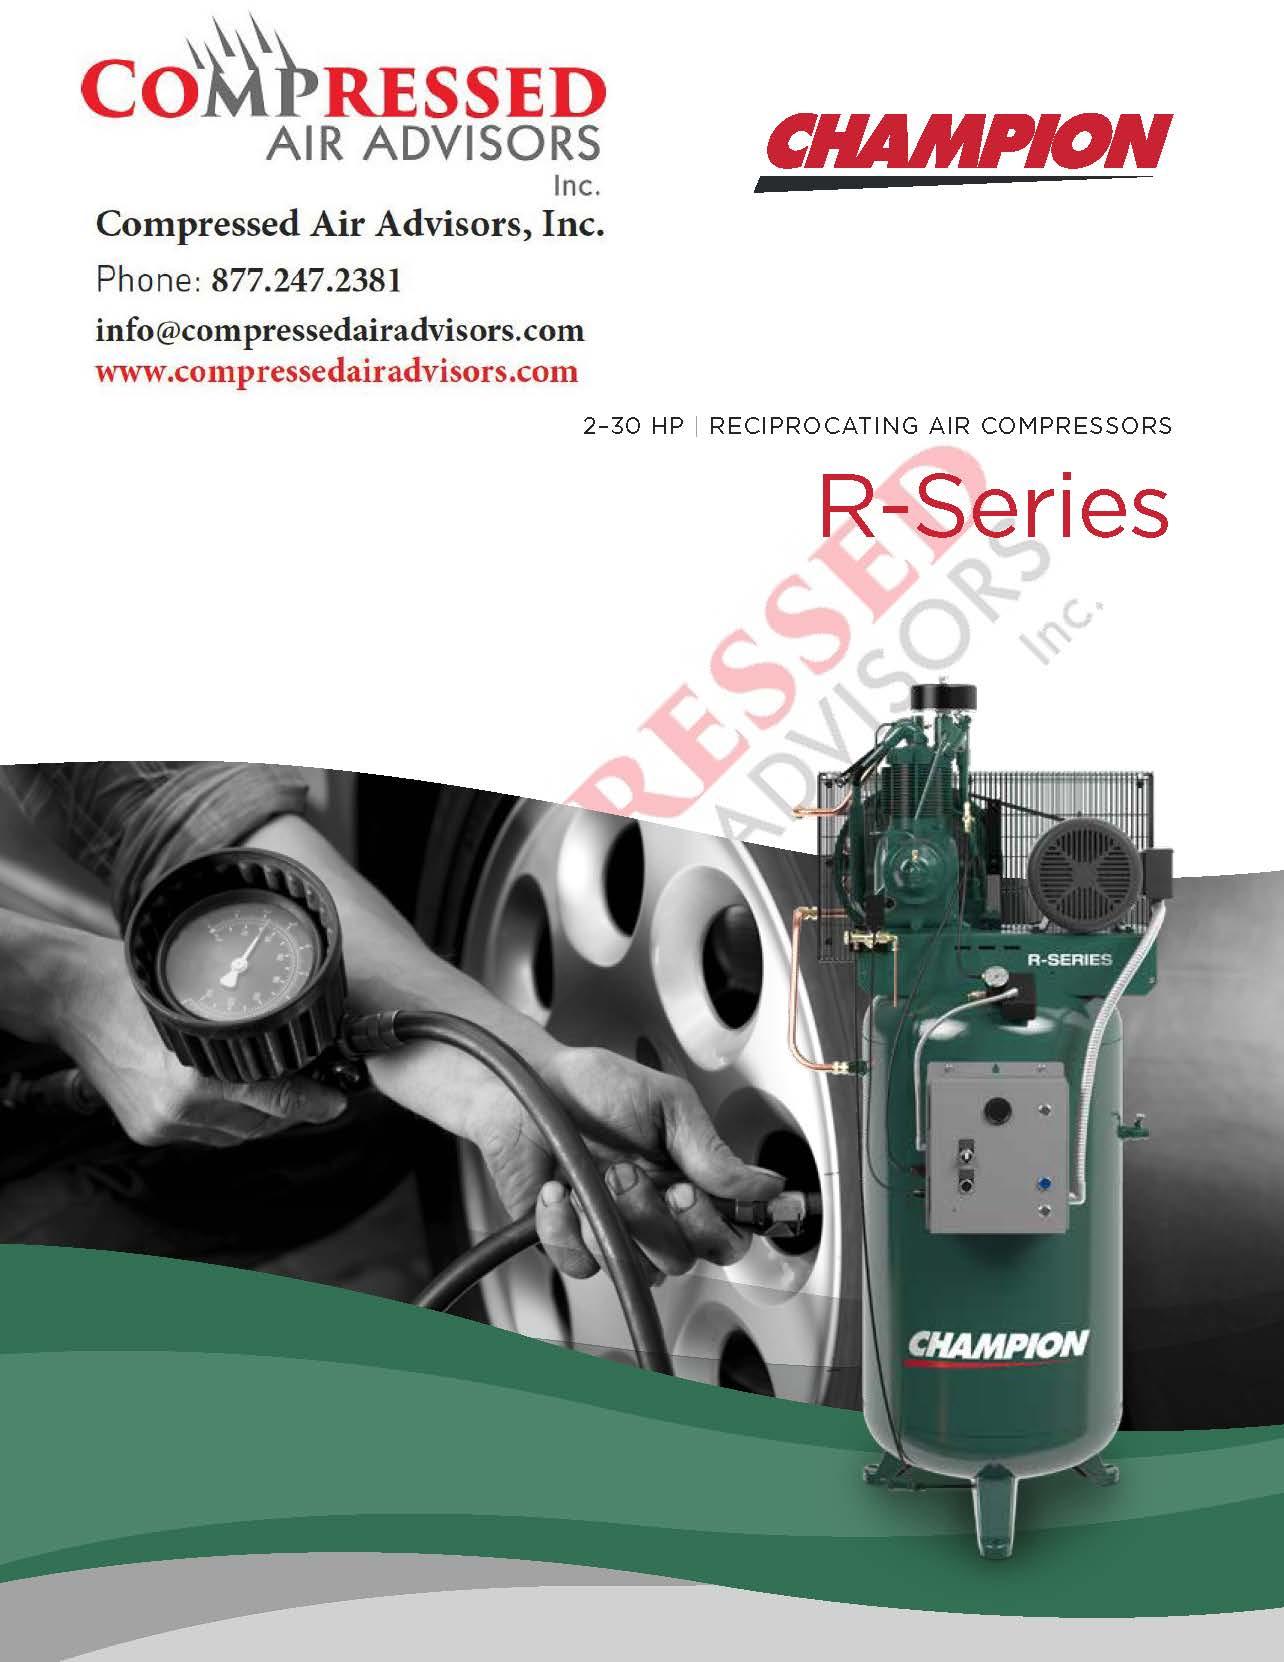 Champion Vr5 12 R Series 5hp Two Stage Reciprocating Air